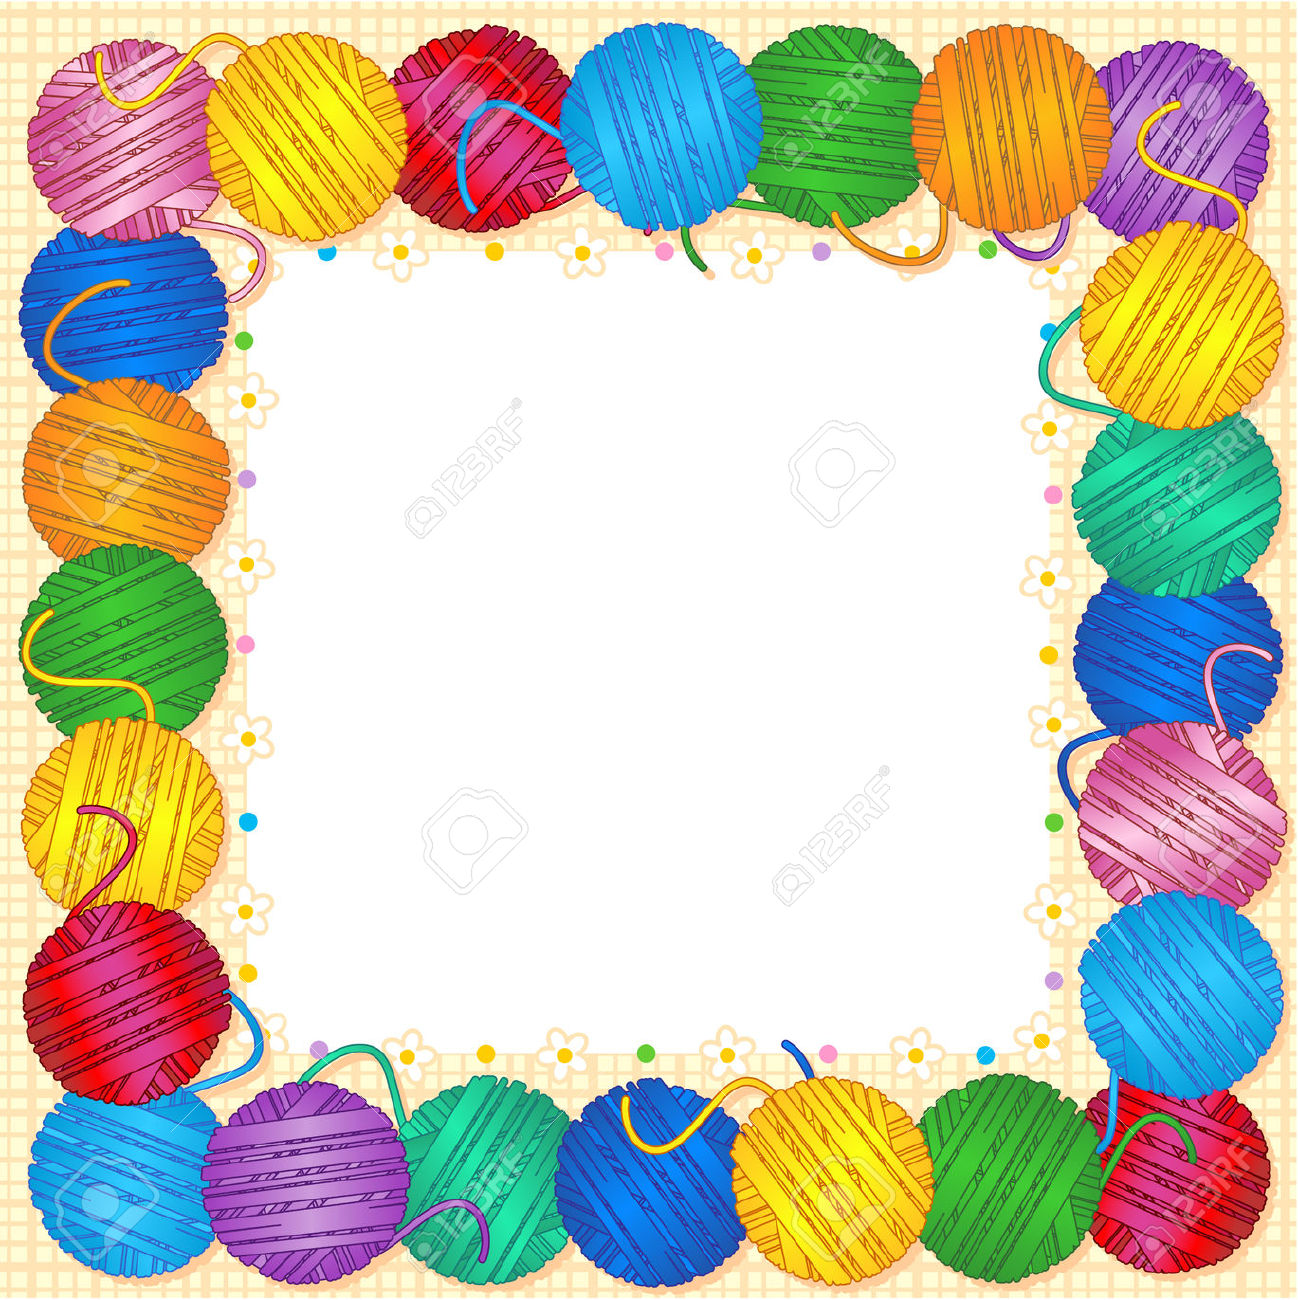 1,833 Ball Of Yarn Cliparts, Stock Vector And Royalty Free Ball Of.